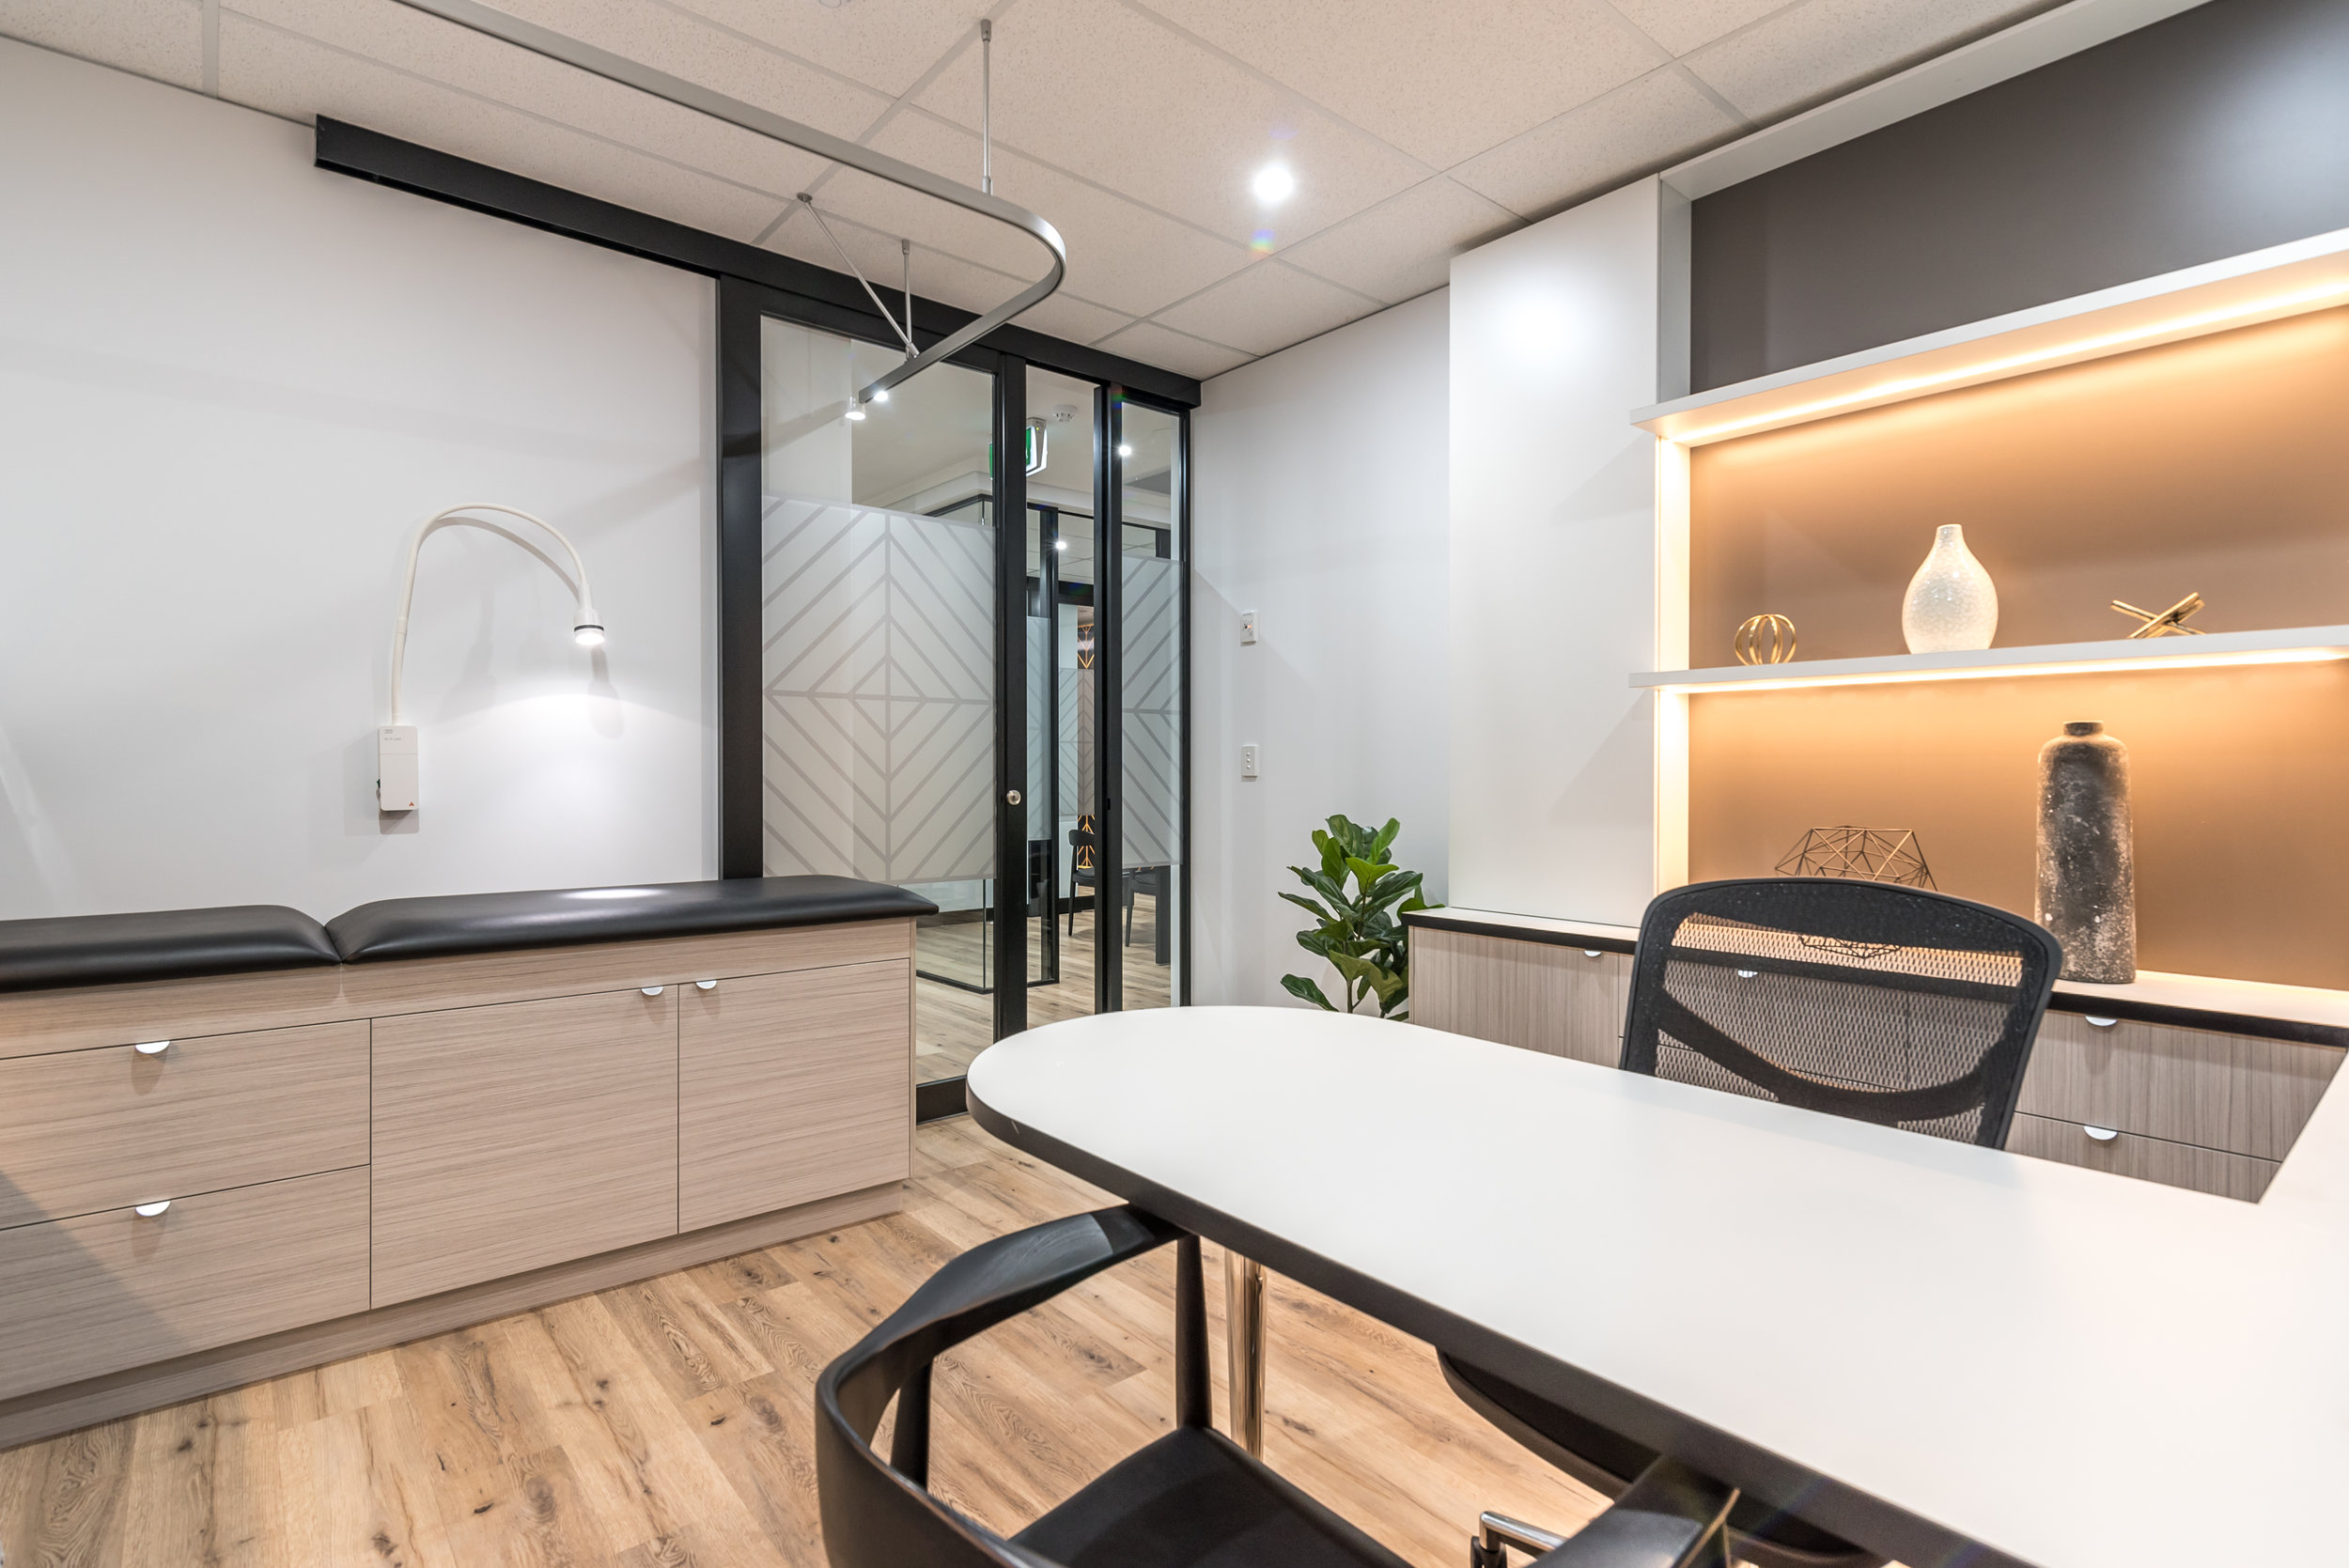 Commodore Dental and Medical Fitout - Sydney-7.jpg